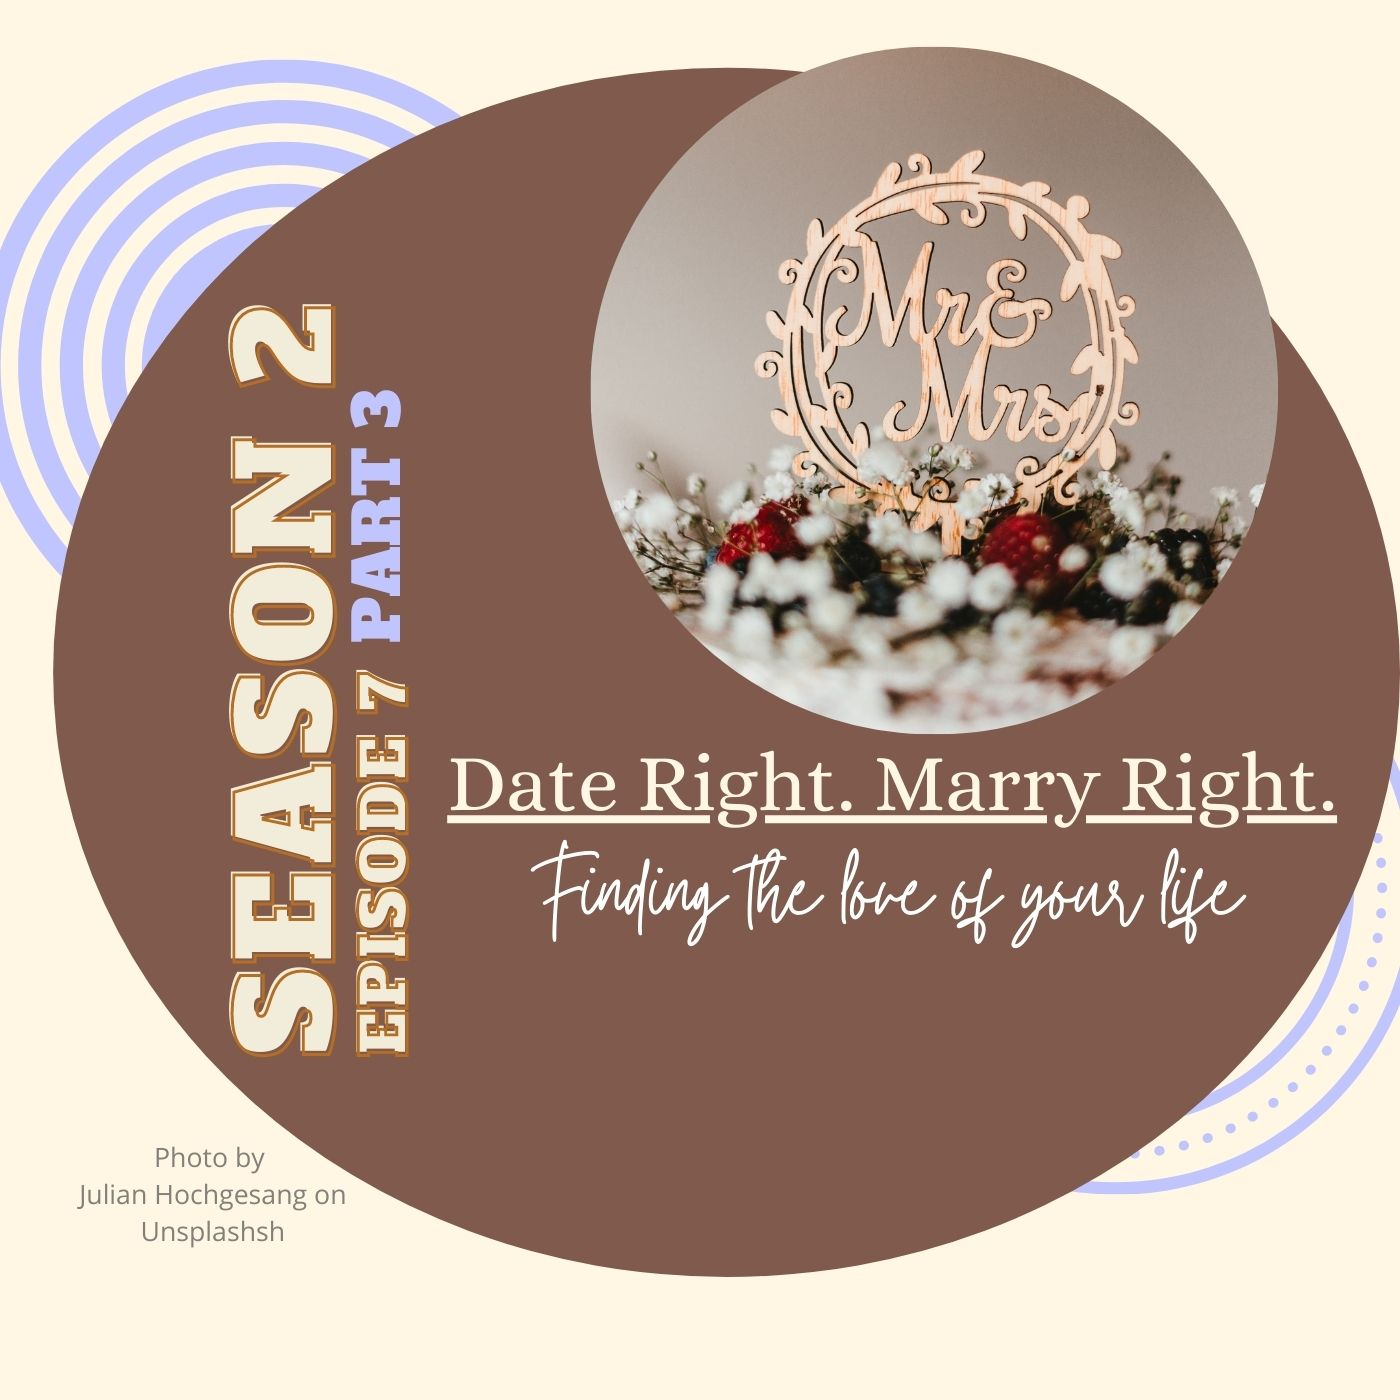 S2E7: Date RIght, Marry Right (Part 3 of 3) show art